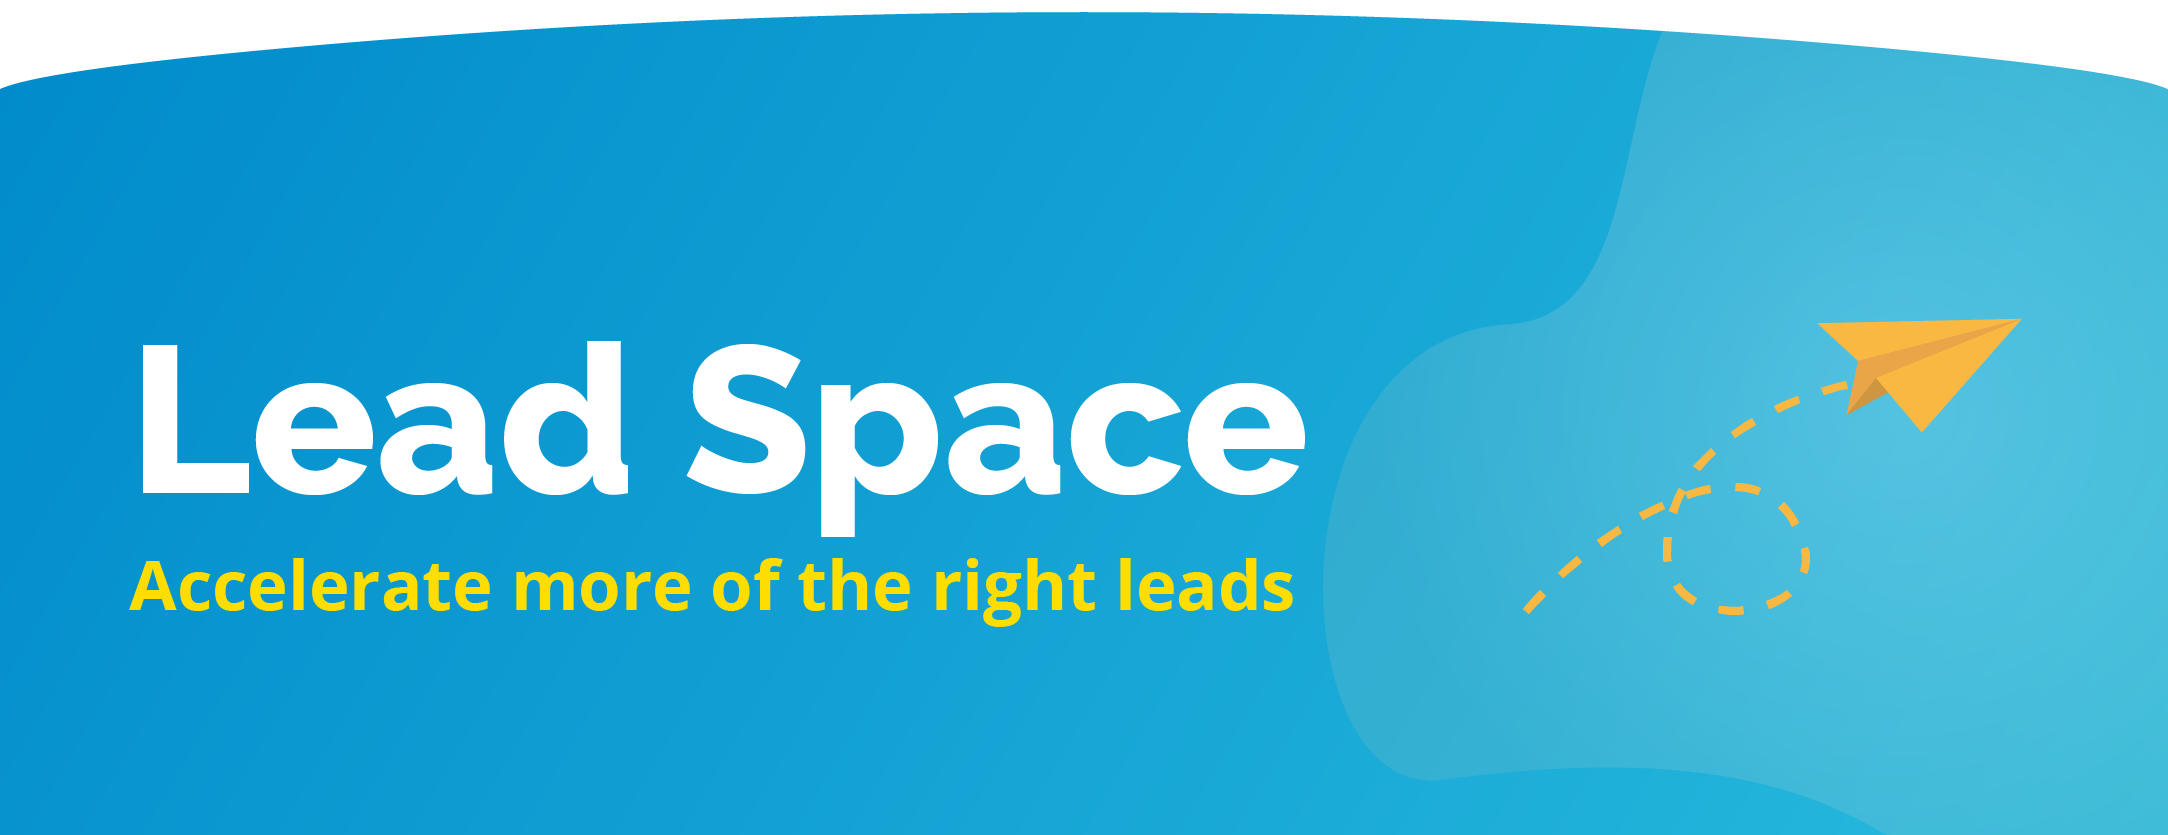 lead-space-endpoints-07